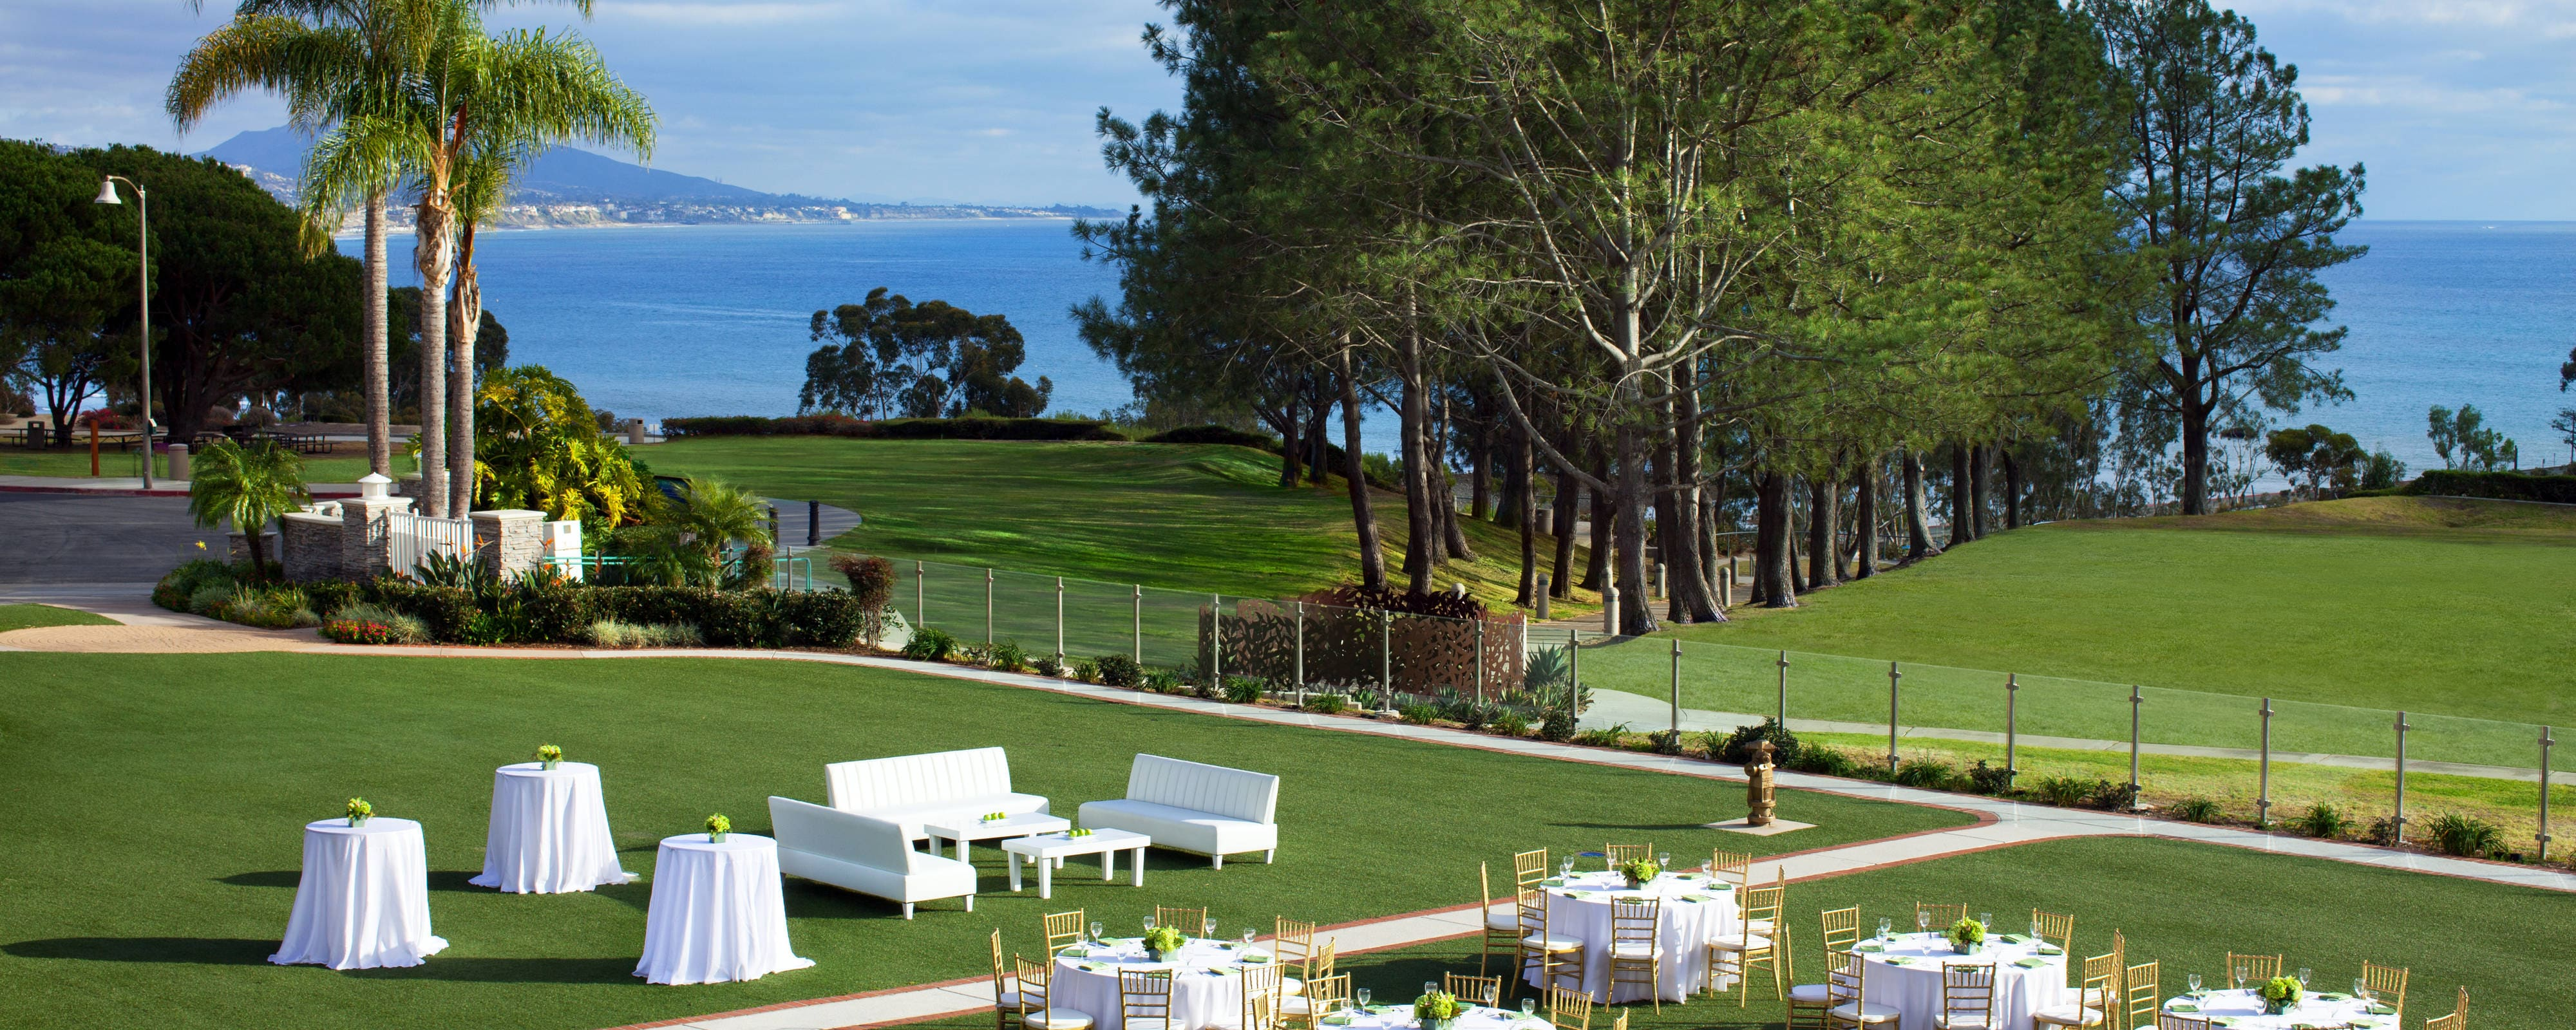 Espacio para eventos al aire libre del Laguna Cliffs Marriott Resort & Spa